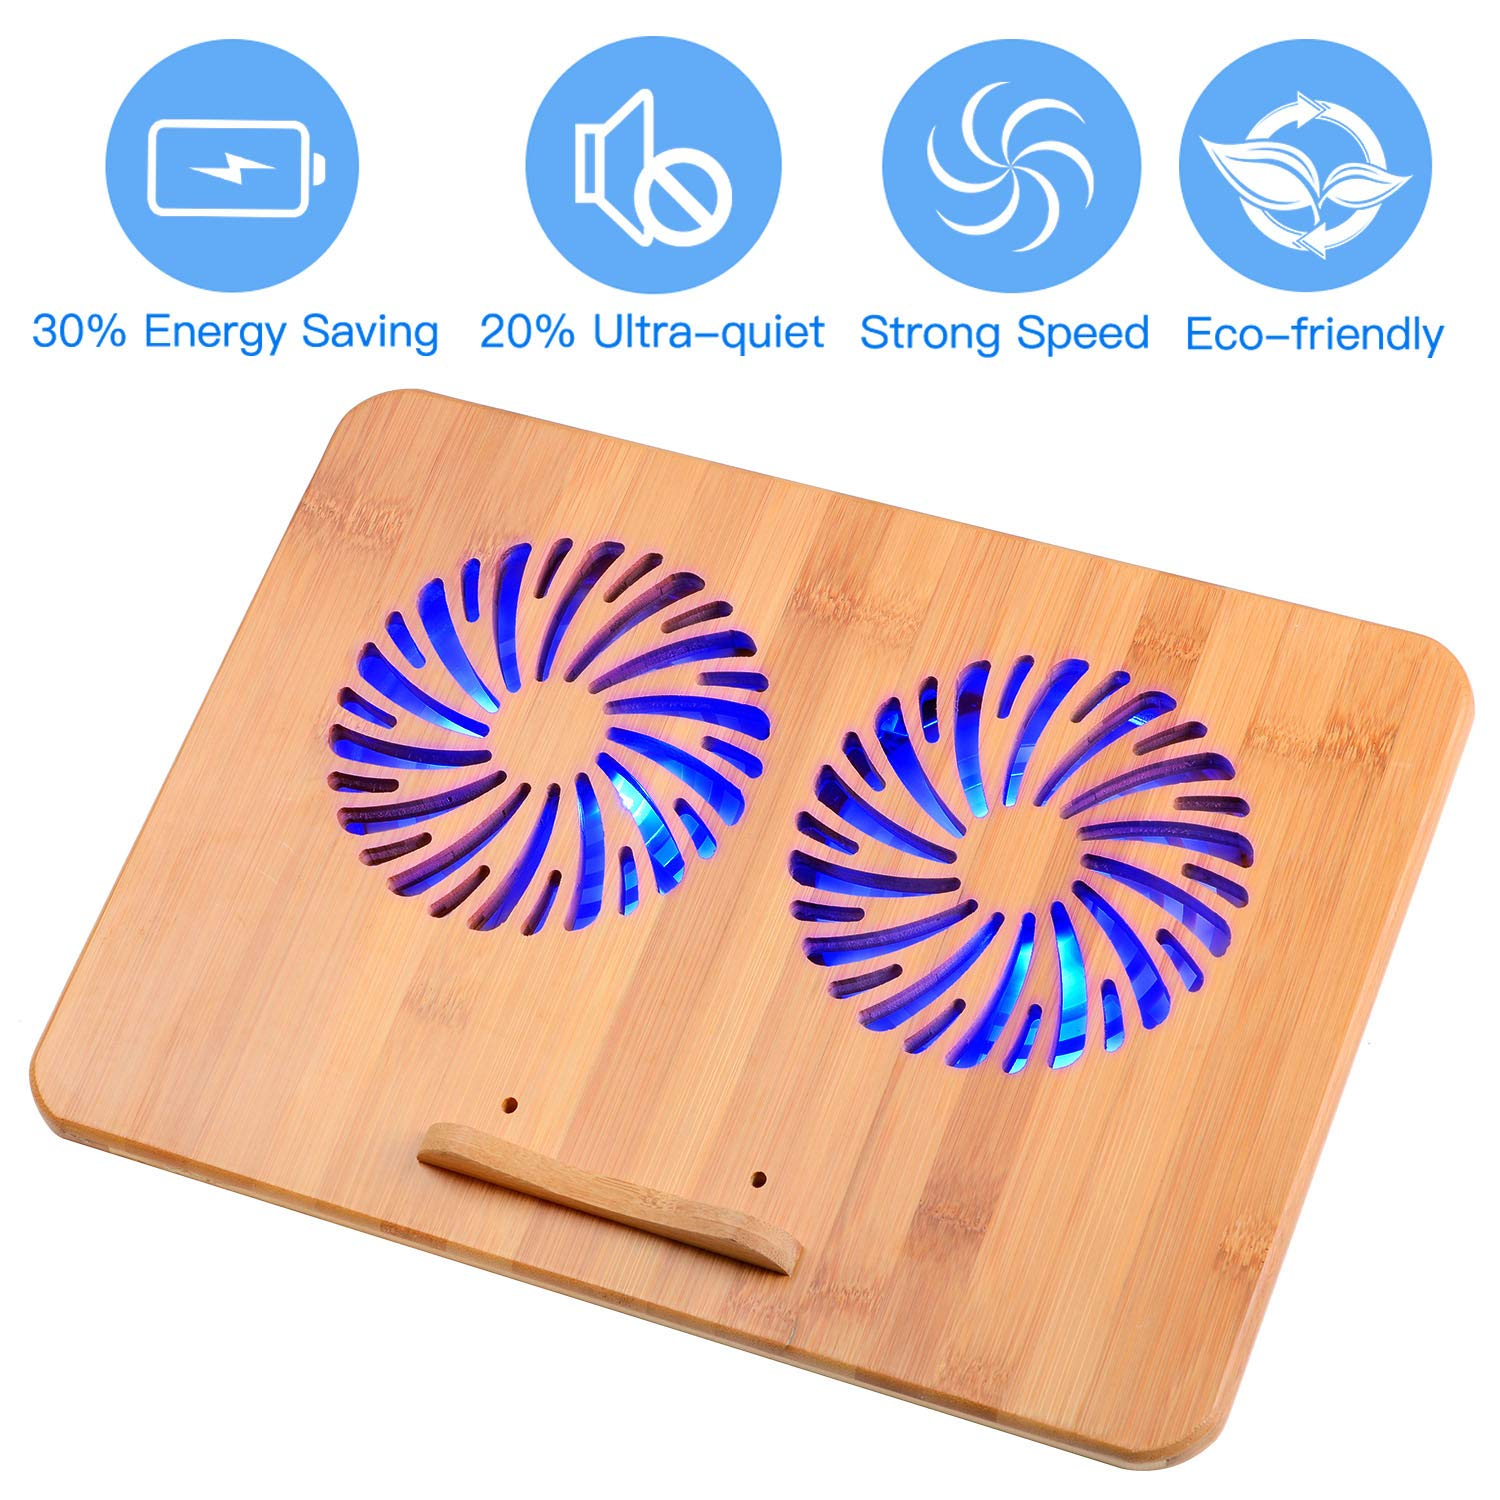 Cooling Pads Amp External Fans Online Shopping For